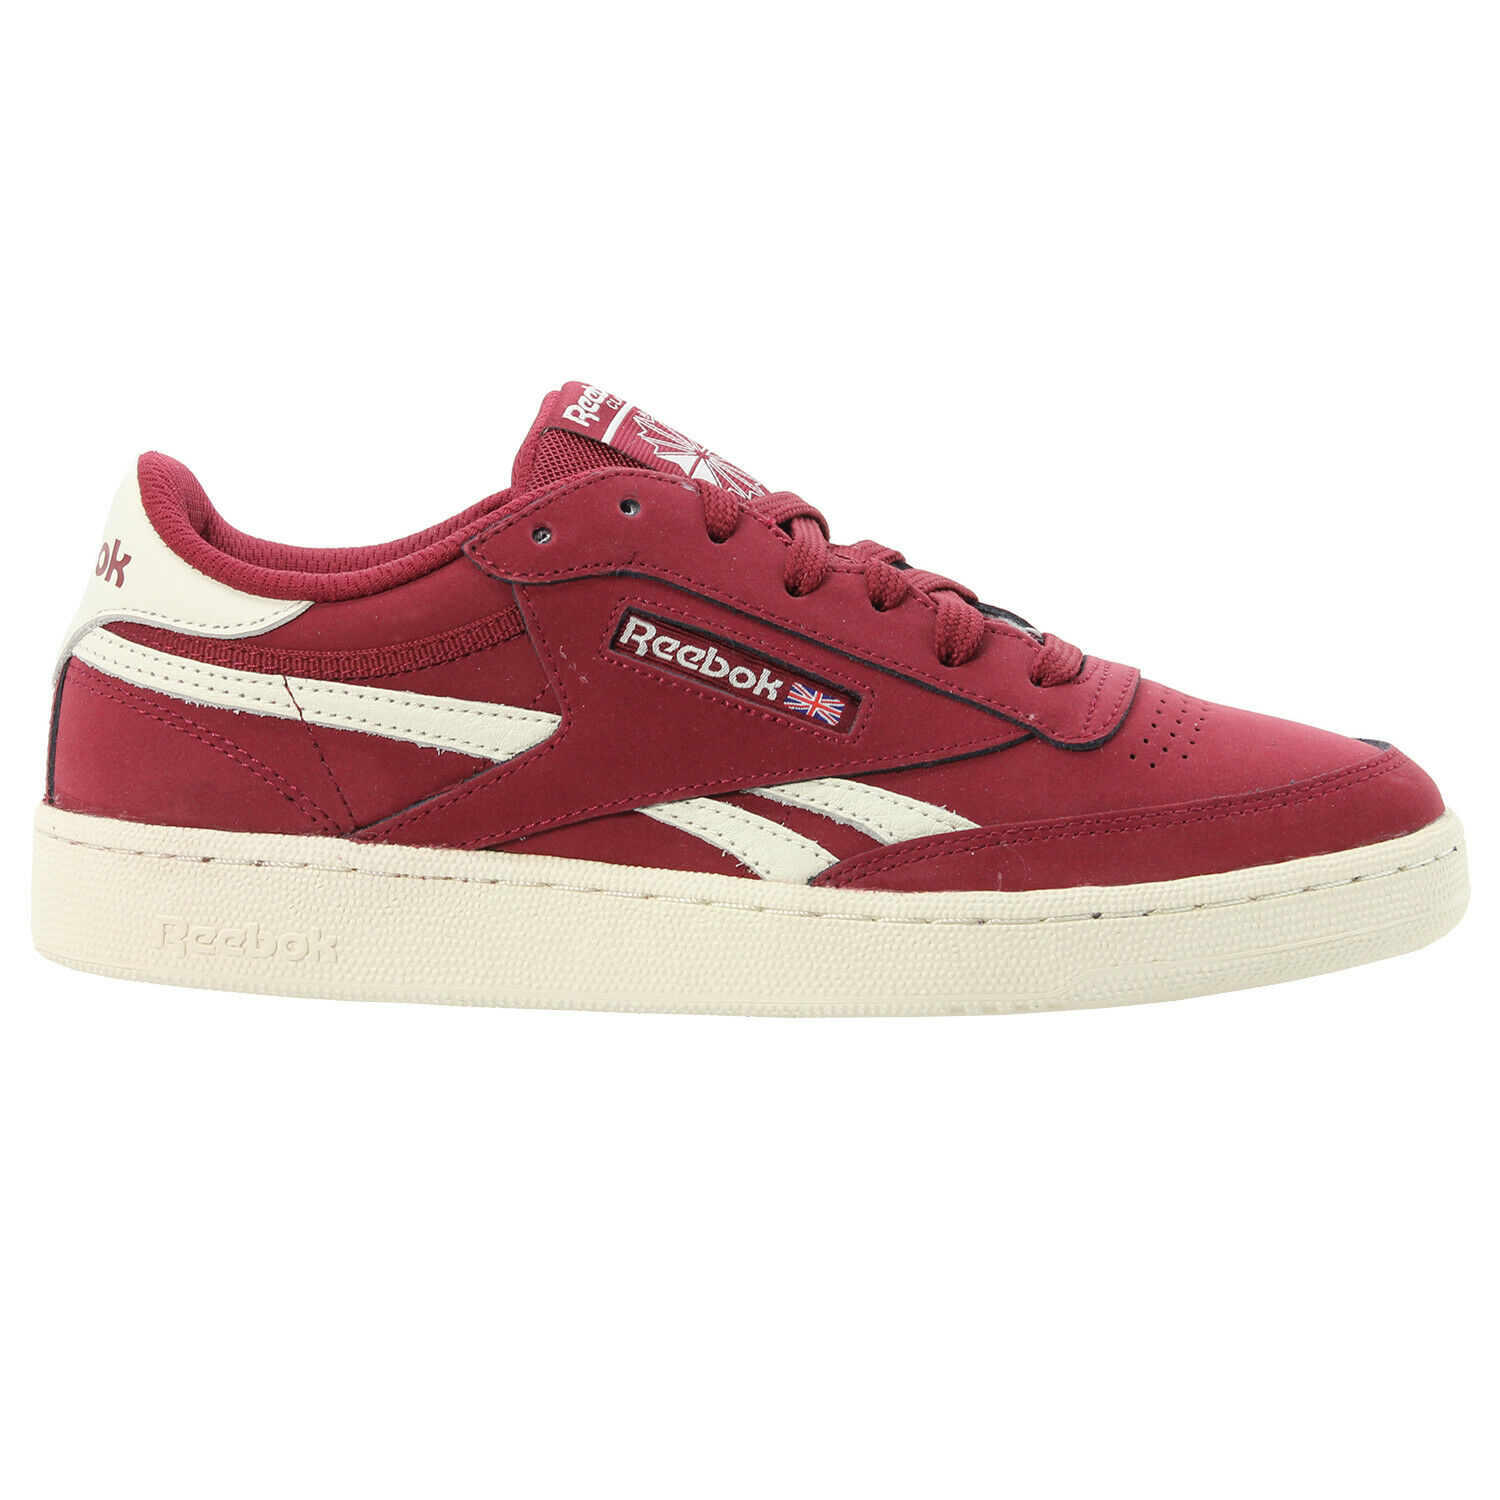 Details zu REEBOK MEN'S CLASSICS REVENGE PLUS TRAINERS SUEDE BURGUNDY SHOES SNEAKERS RED